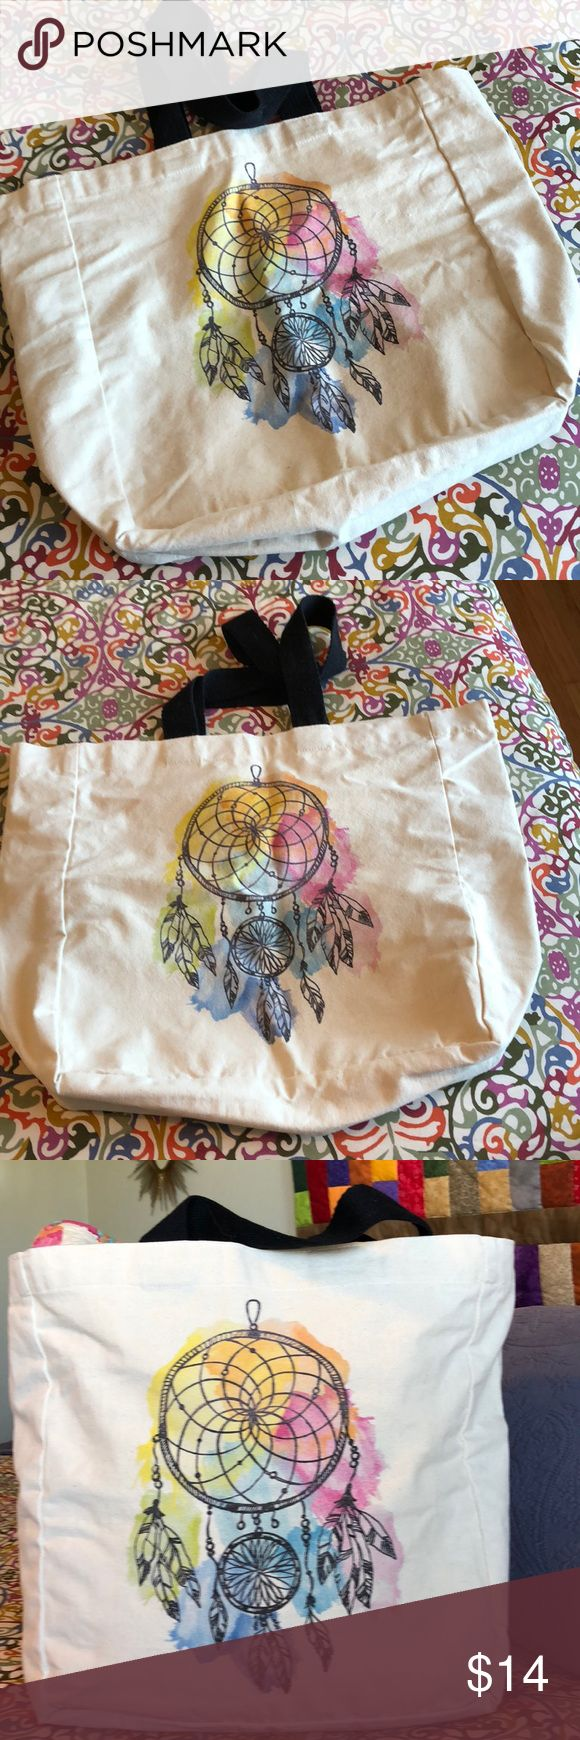 Dream catcher canvas tote! NWOT Off white canvas tote with black woven handles  Dream catcher design on both sides Very roomy, never used Bags Totes